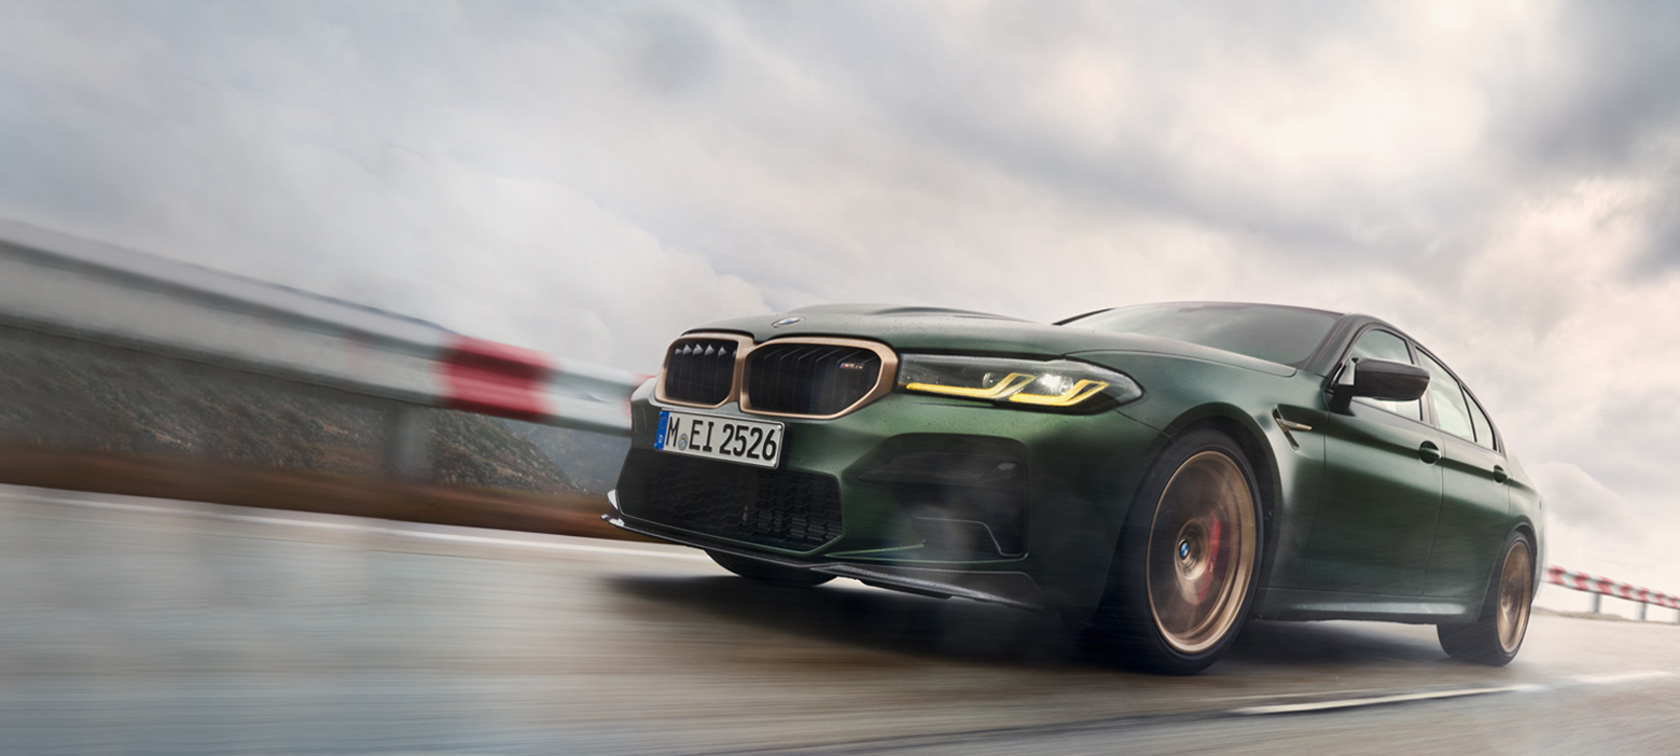 BMW M5 CS F90 2021 Frozen Deep Green metallic Dreiviertel-Frontansicht